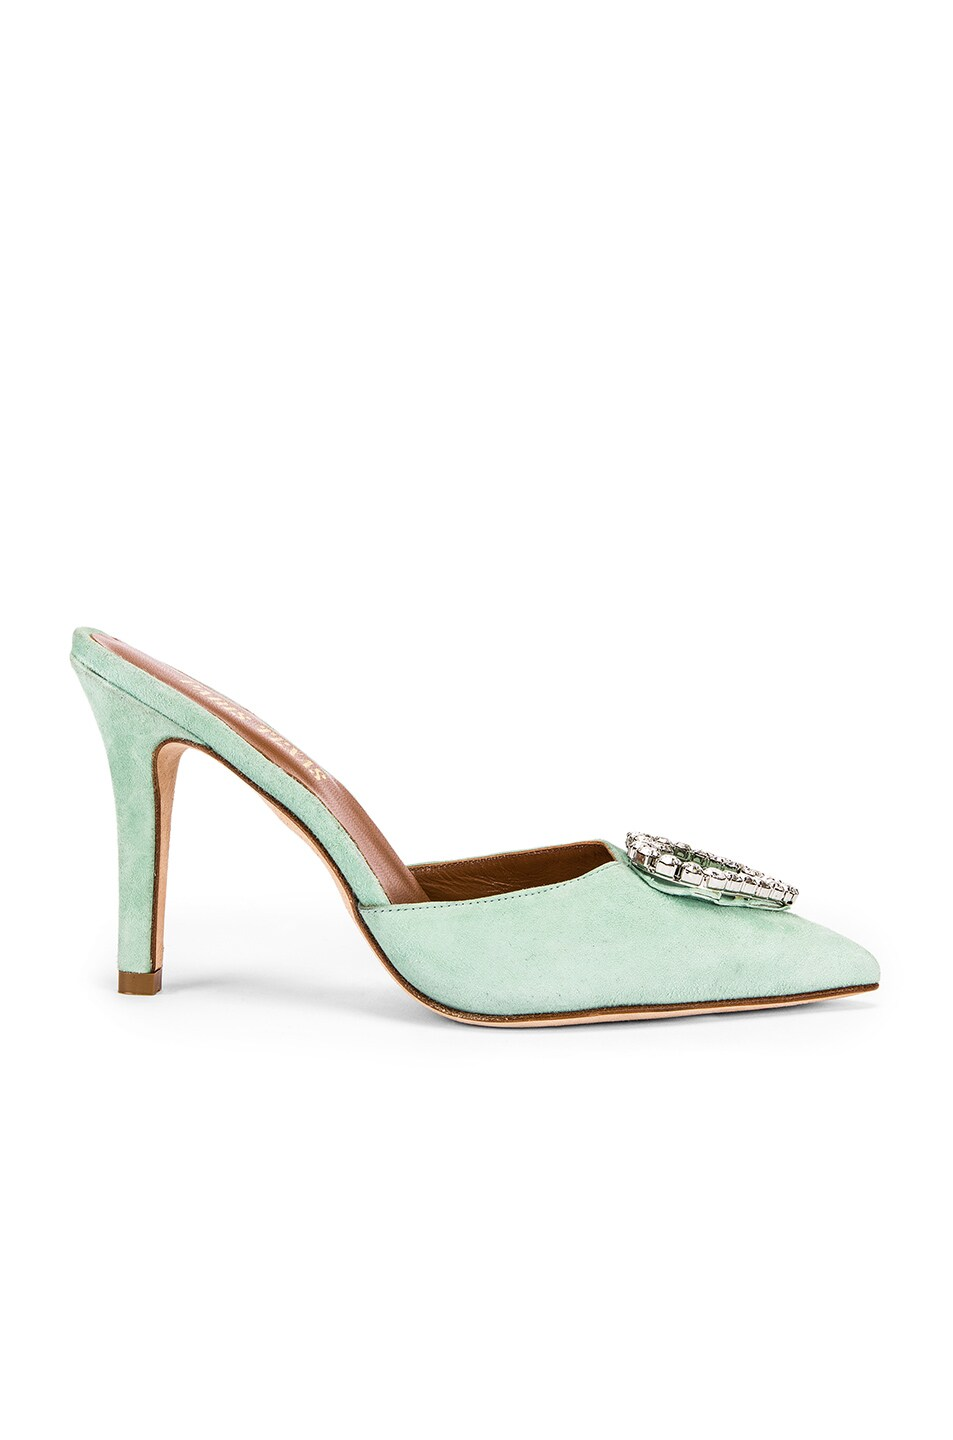 Image 2 of Paris Texas Crystal and Suede Stiletto Mule in Mint